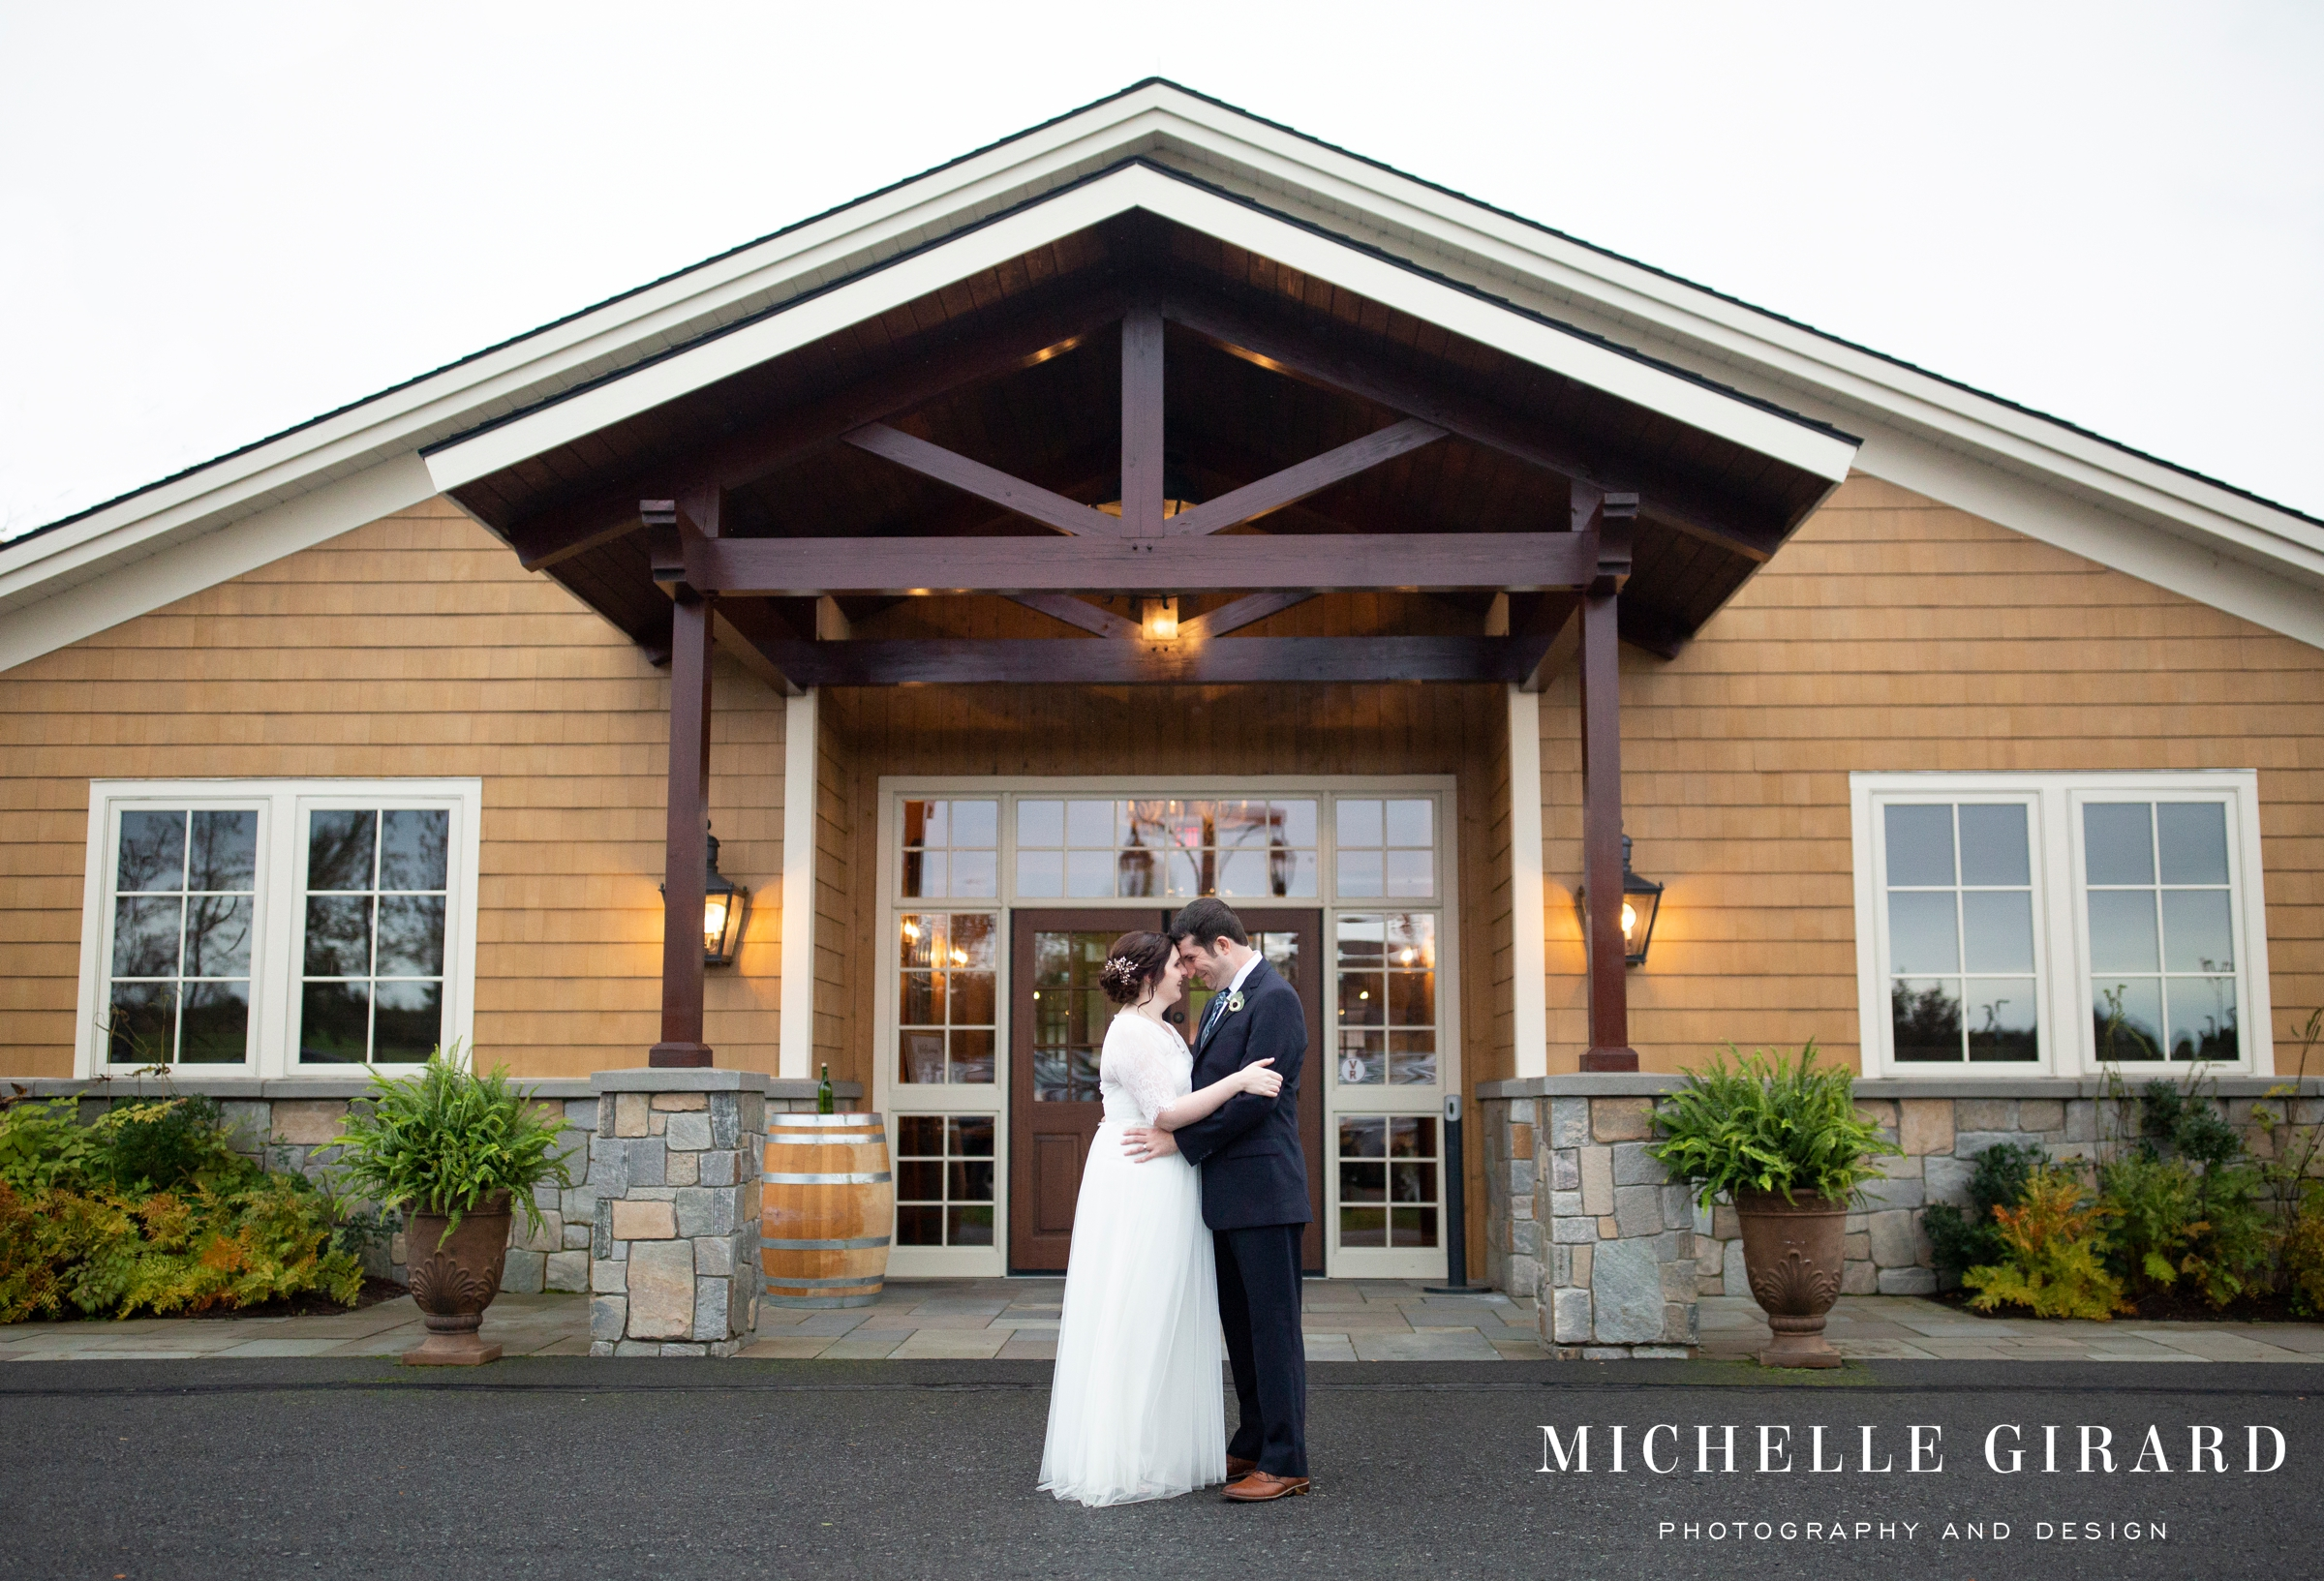 OweraVineyards_WineryWedding_CazenoviaNY_MichelleGirardPhotography010.jpg